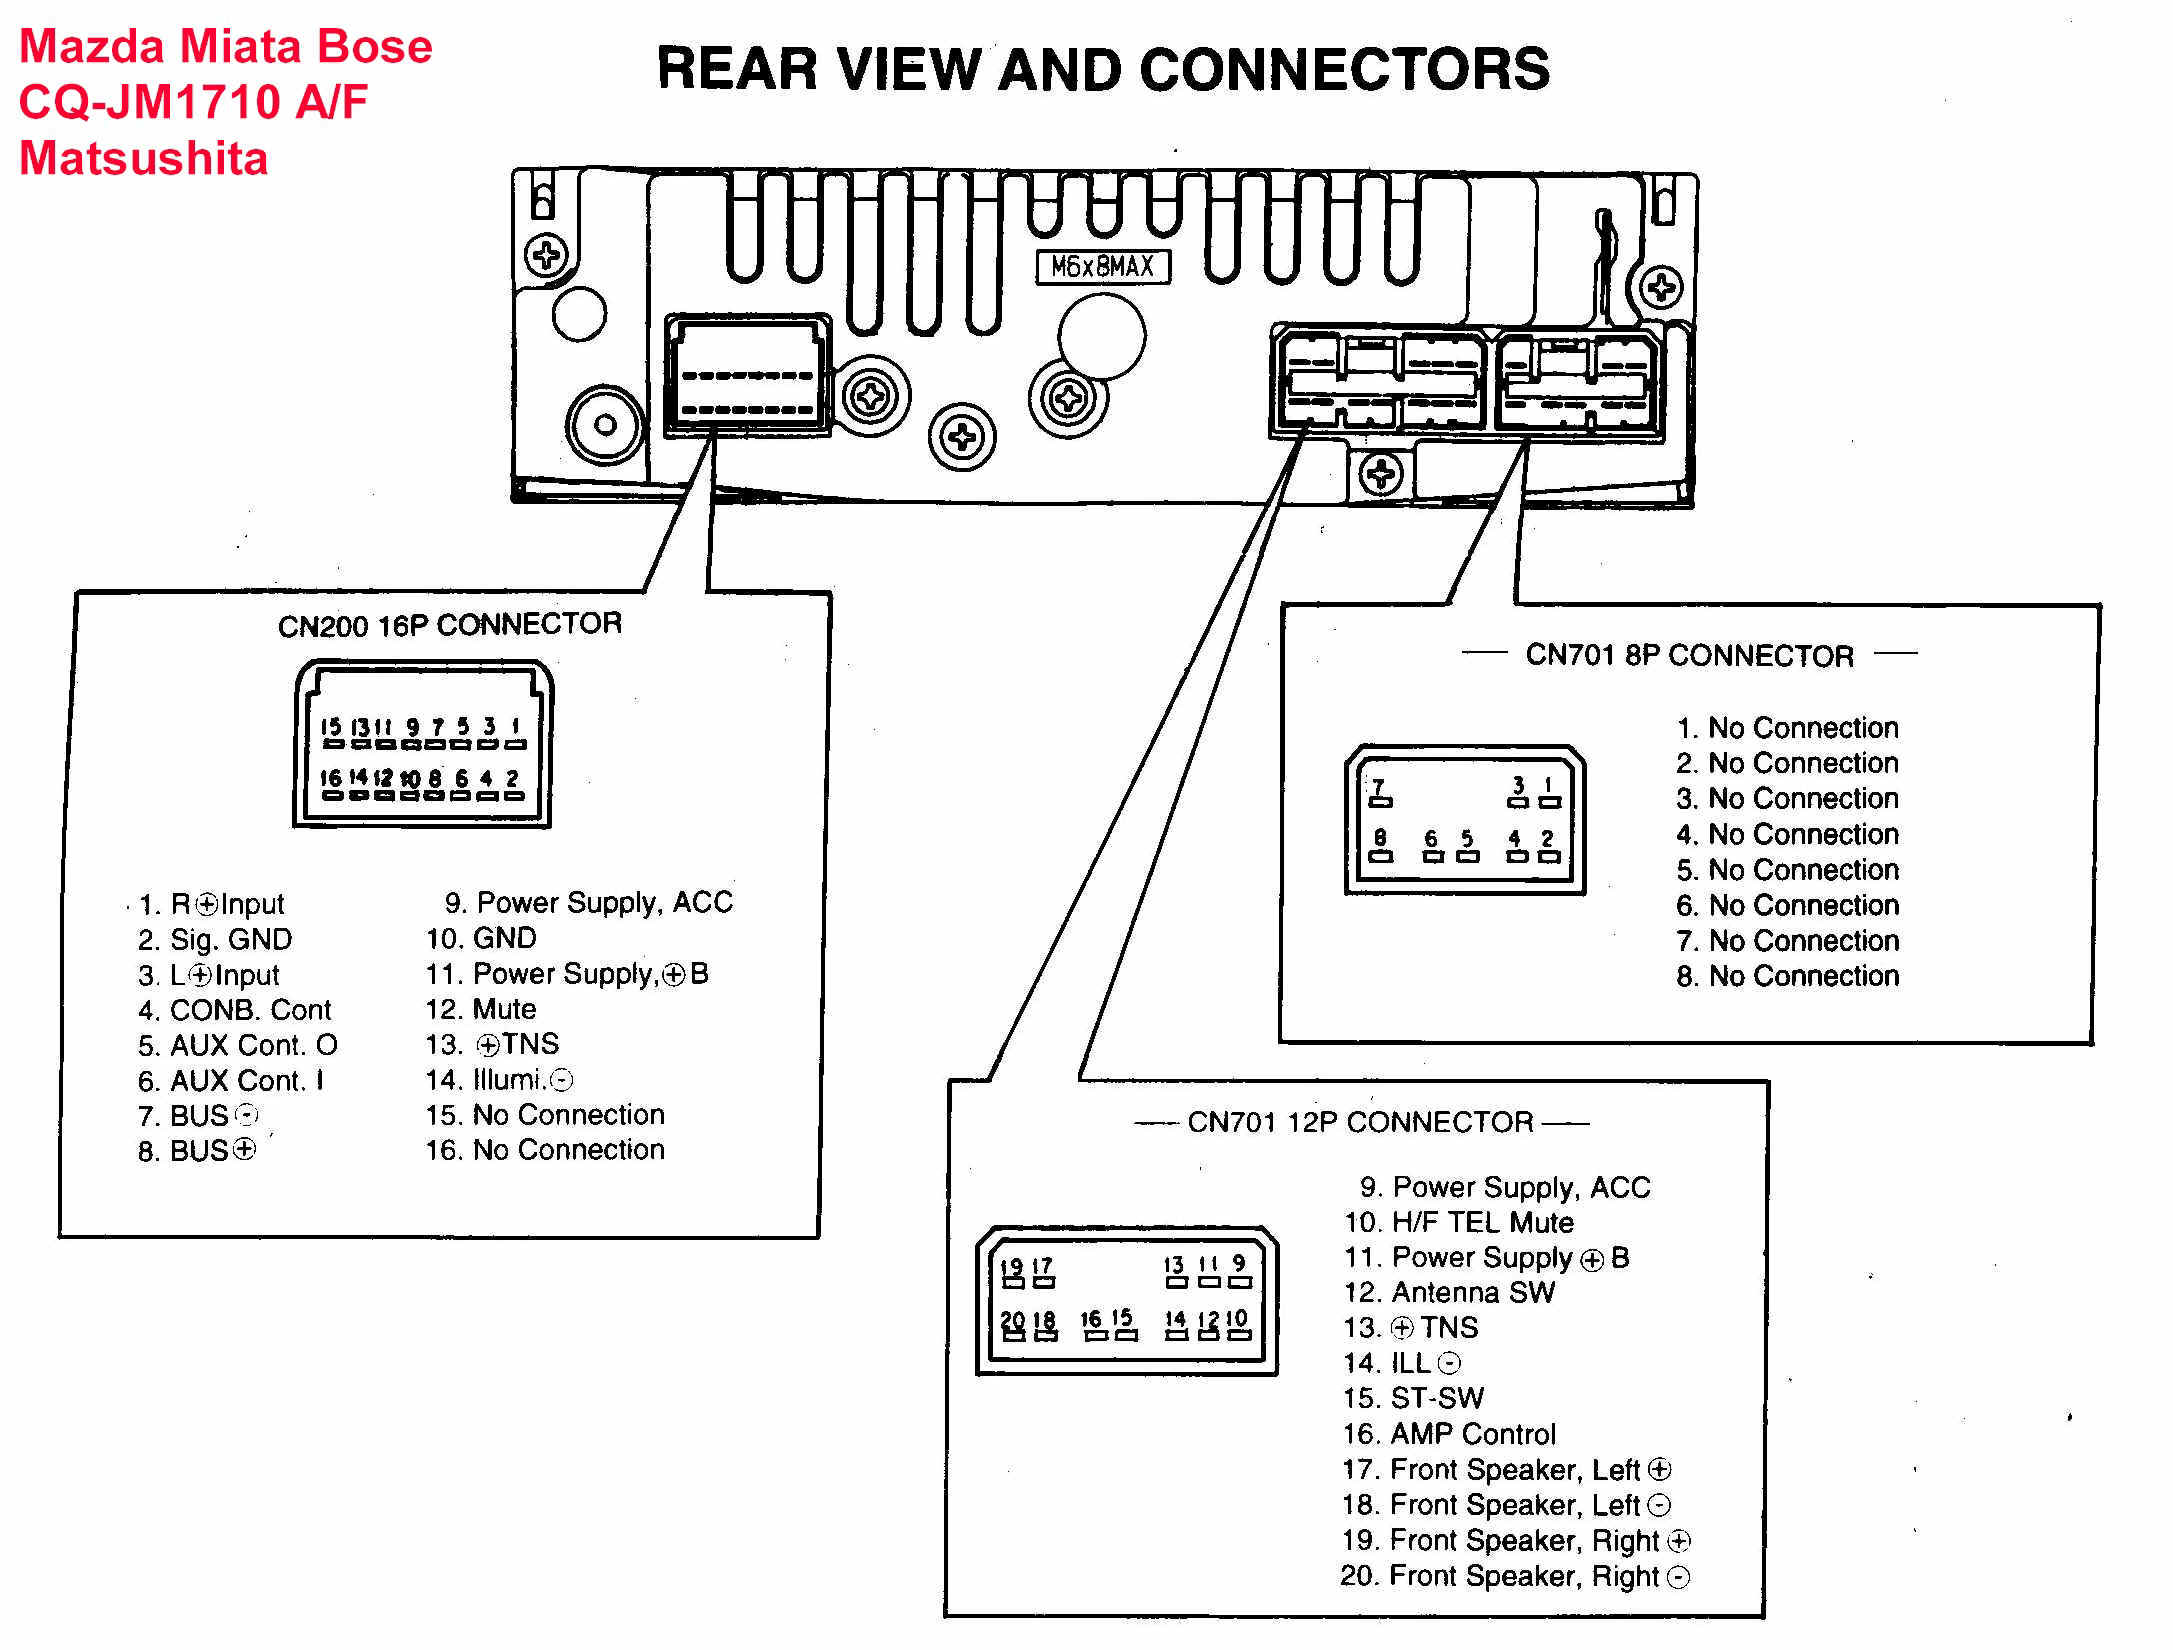 mazda wiring diagram color codes 2005 dodge magnum pump engine car audio wire factory stereo